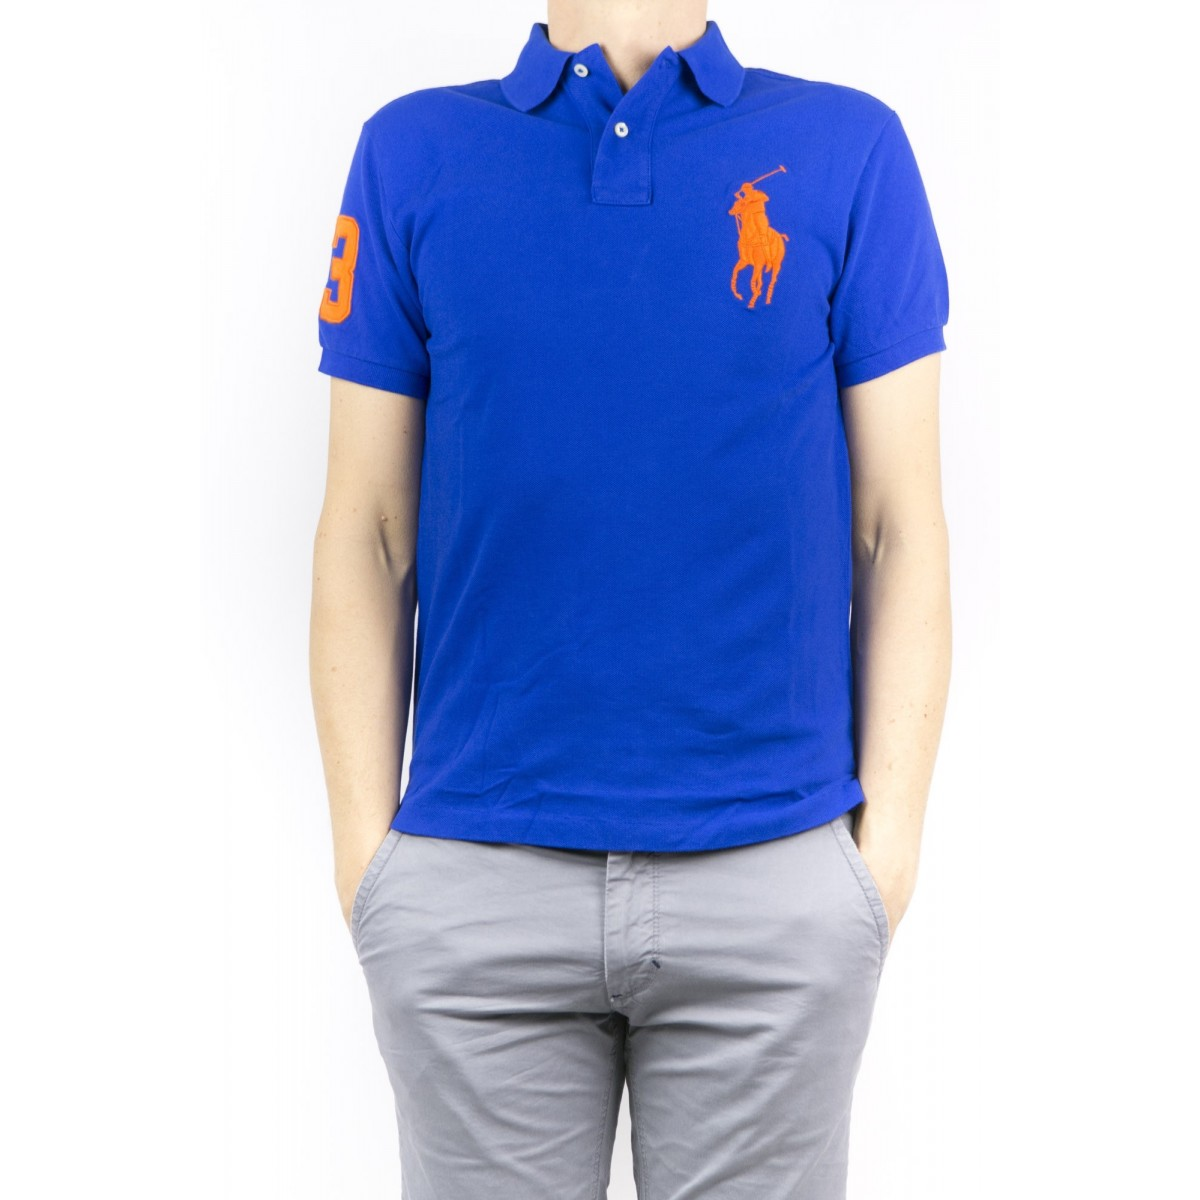 Polo Ralph Lauren Manner - A12Kaa26C8312 A4SAP - bluette